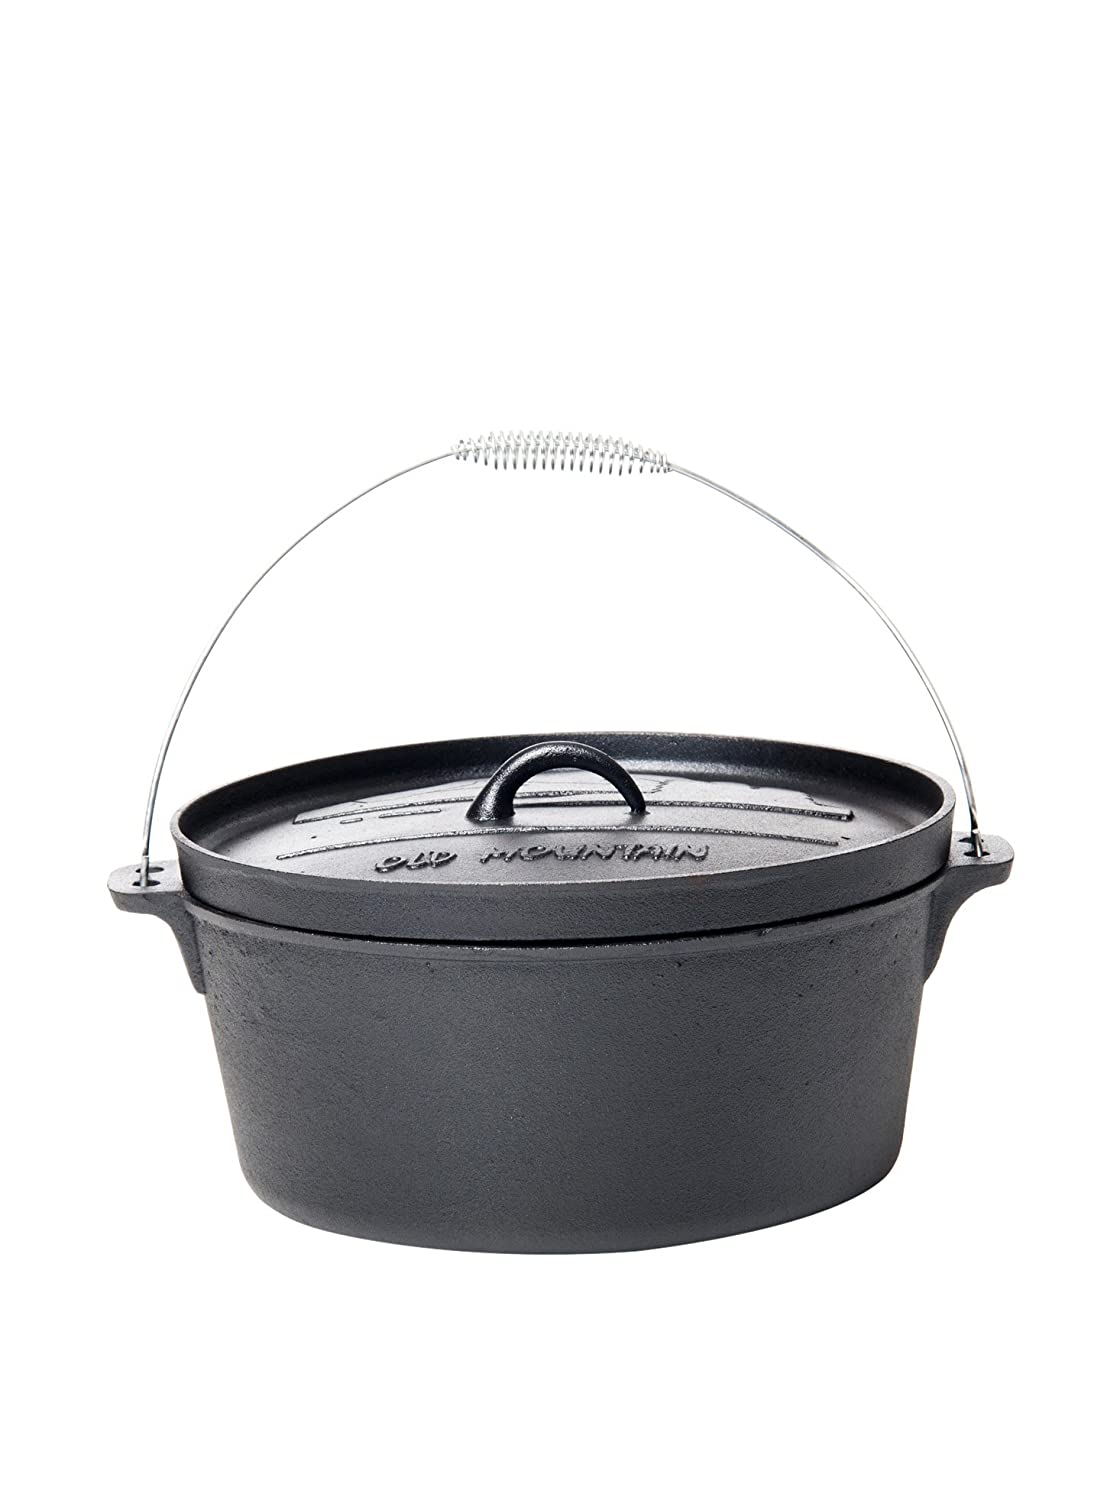 Old Mountain 10177 Pre Seasoned 8-Quart Dutch Oven with Flanged Lid, No Feet, black